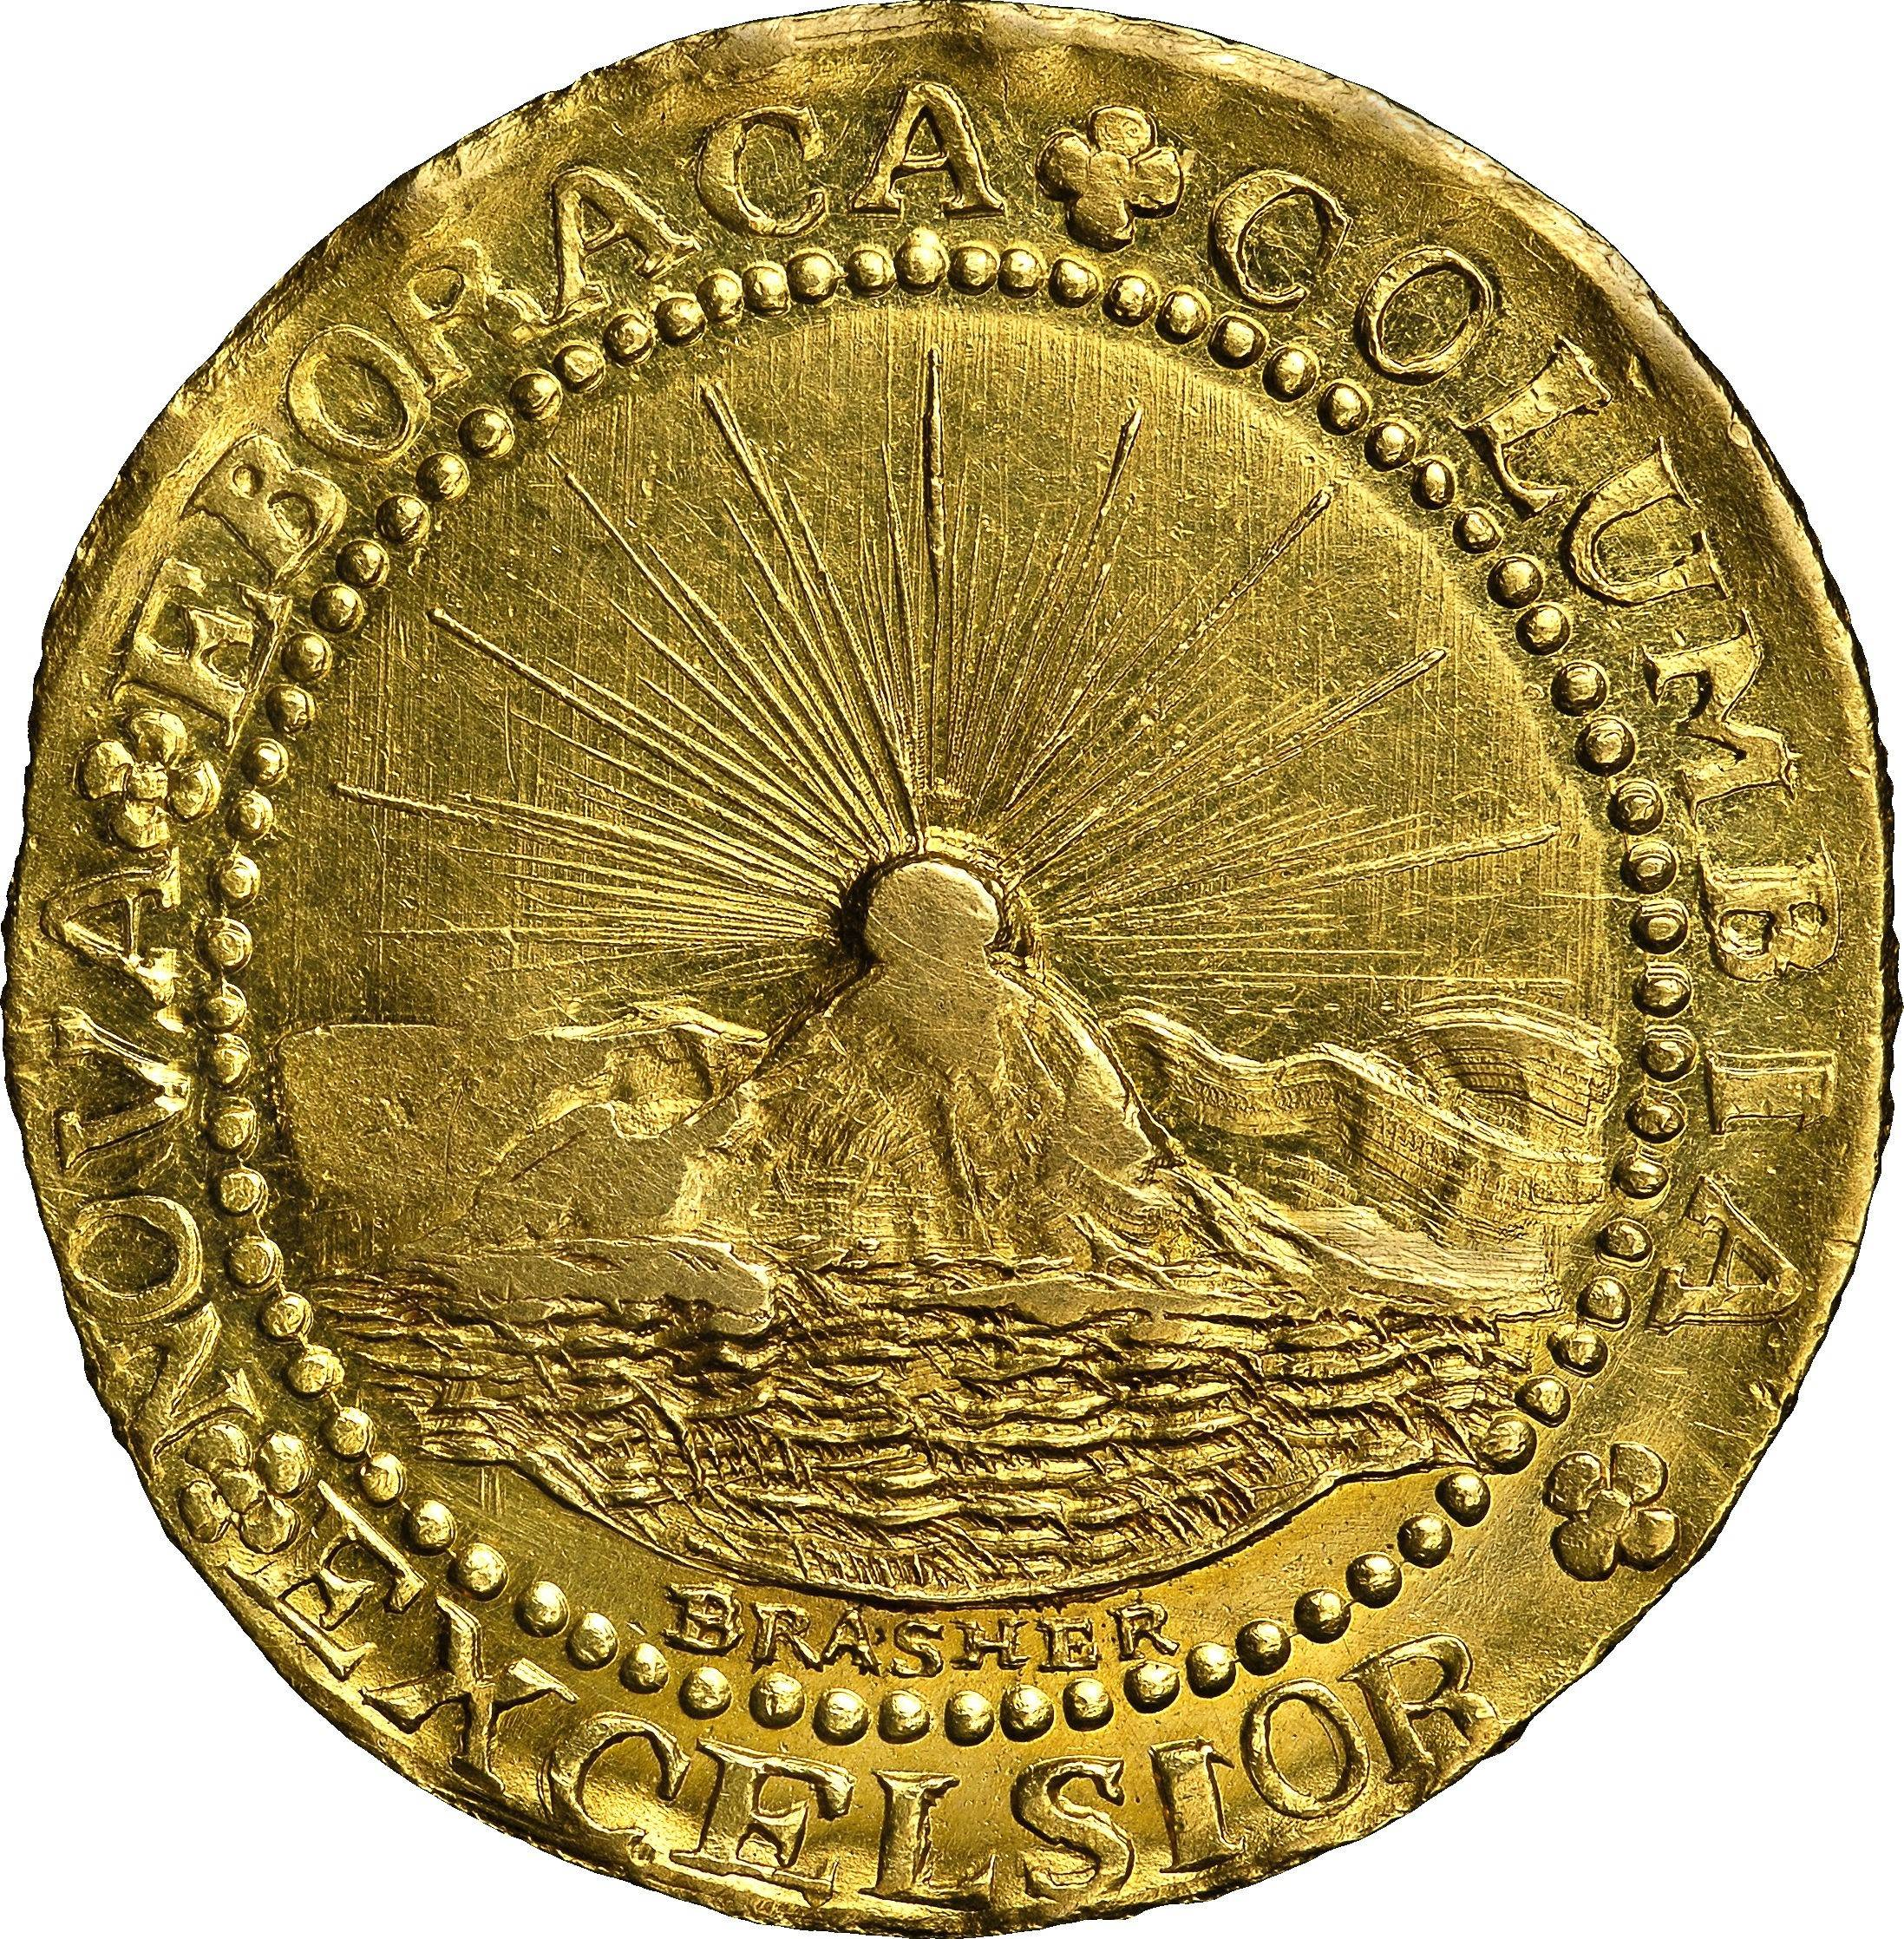 This is the reverse side of a Brasher Doubloon, the first gold coin made for the United States in 1787.